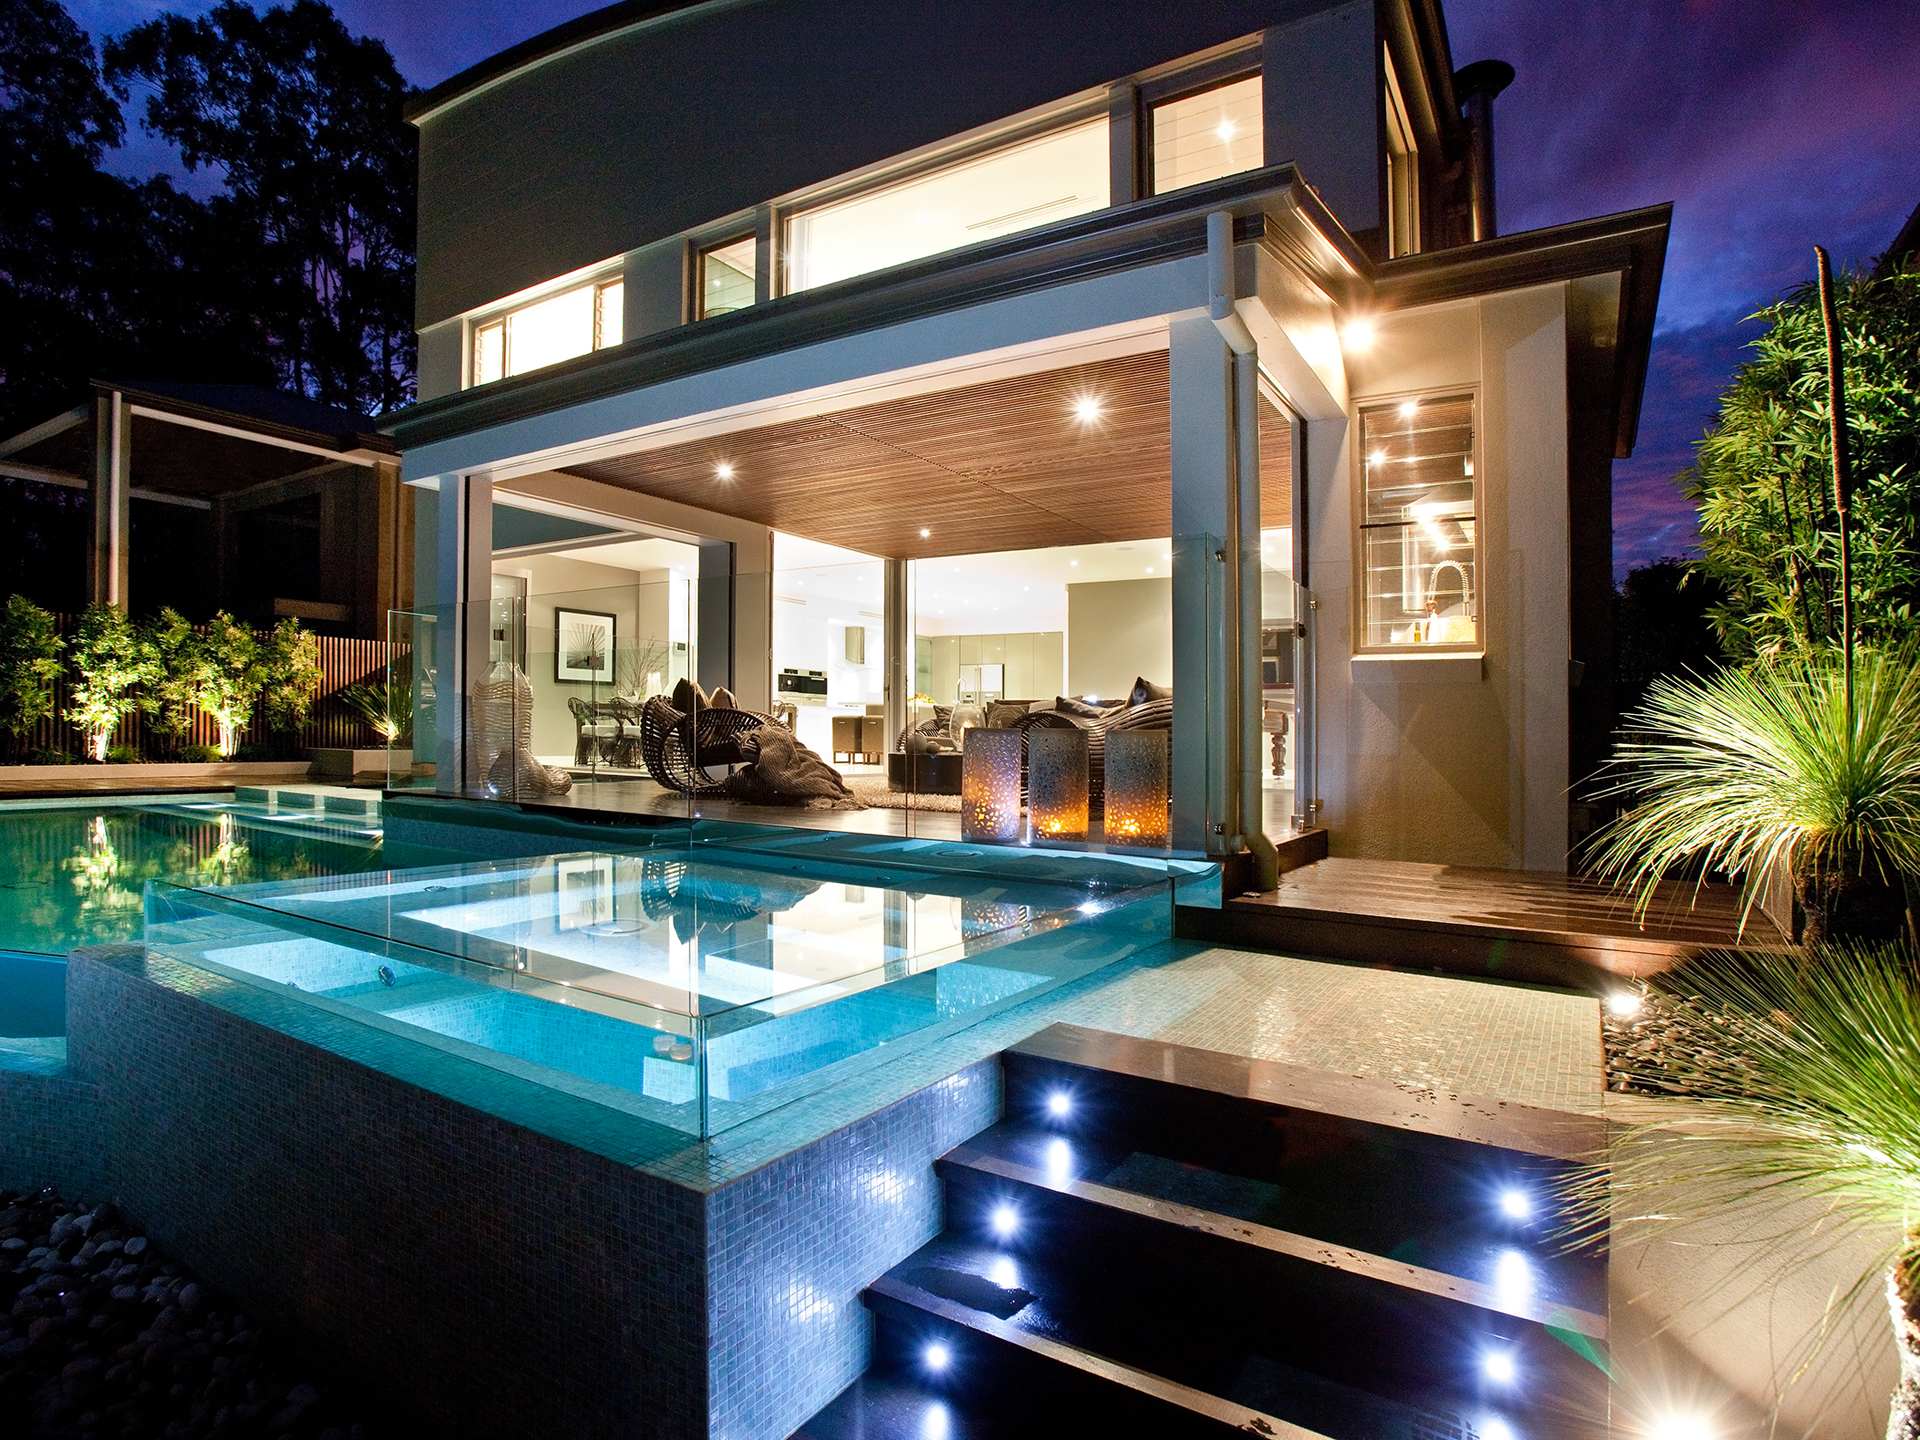 MAJESTIC TWO-LEVEL HOME WITH POOL